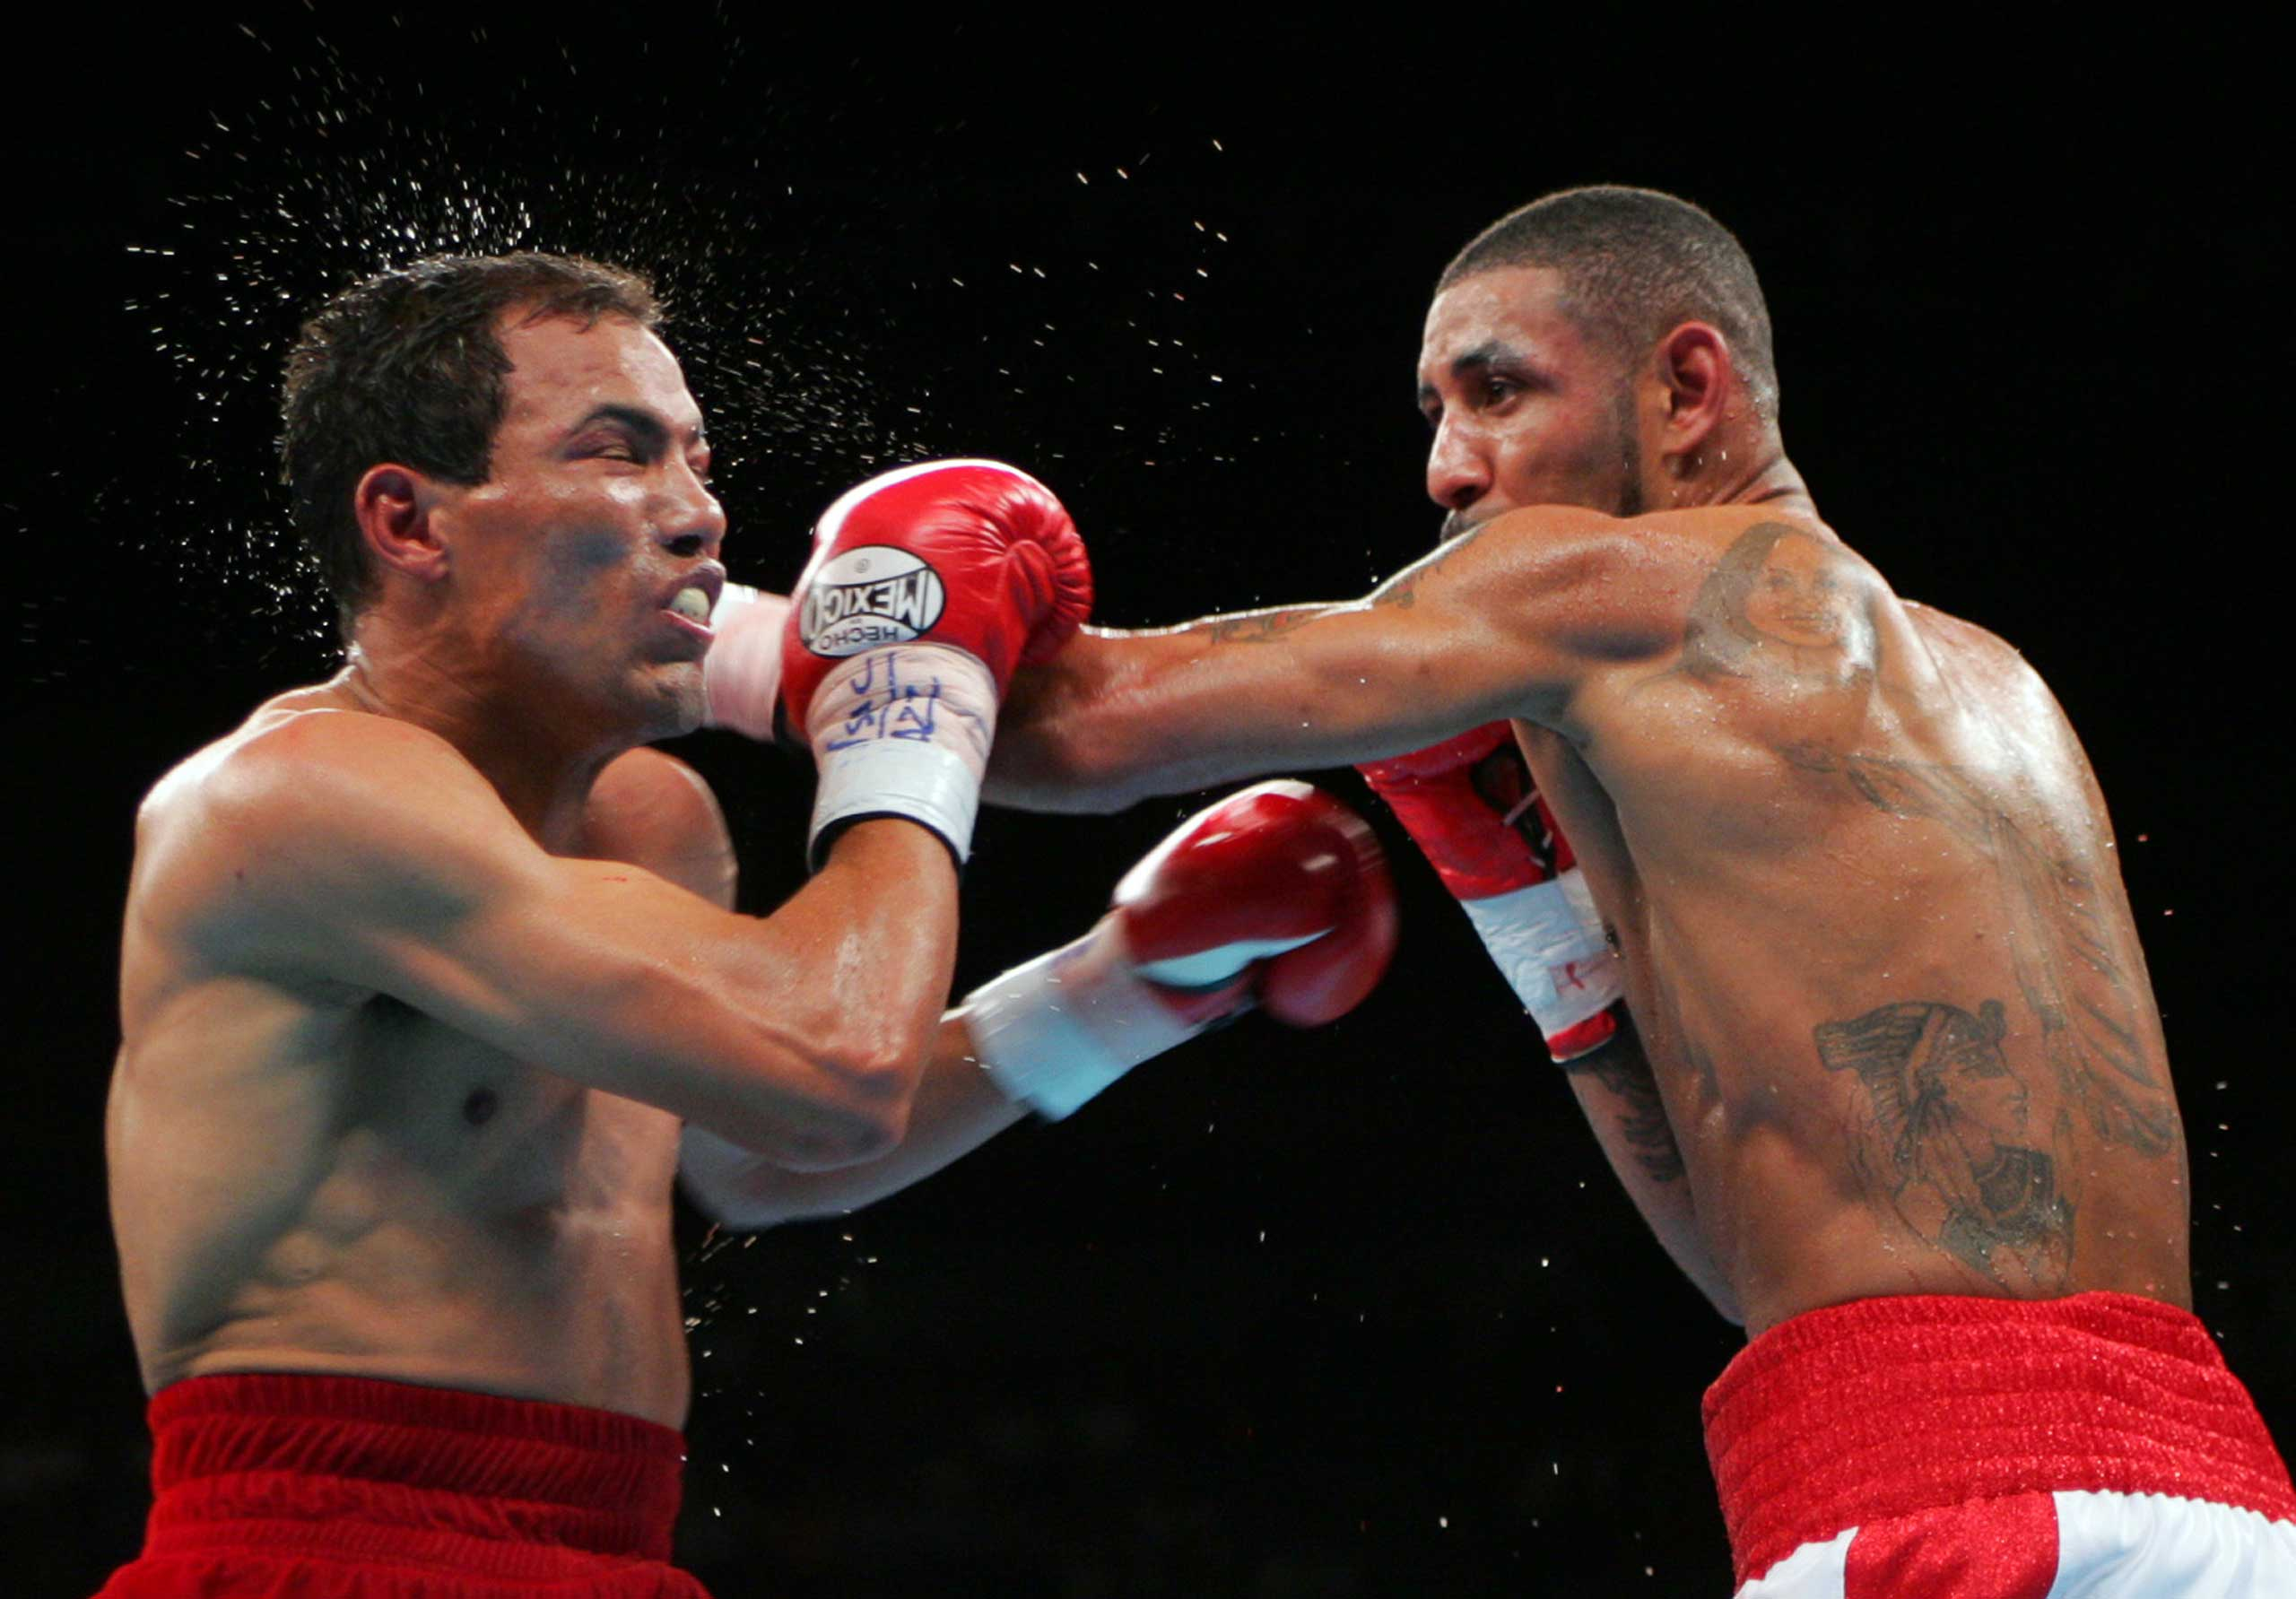 "<b>Diego Corrales vs. Jose Luis Castillo, May 7, 2005</b>  They may not have been household names but with the WBC lightweight title at stake, Diego Corrales and Jose Luis Castillo wowed every house which watched this classic. The pace was simply unrelenting with both fighters landing and receiving repeated blows over nine nasty rounds. The fight ended in memorable fashion in the 10th when Corrales, after being floored twice, rose and landed a devastating series of shots that left Castillo draped helpless on the ropes. But this devastating denouement would not be without controversy: upon getting up for the second time, Corrales spat out his gumshield, thus benefitting from an unofficial 30 second timeout, whereby he literally regained his senses. The pair fought against each other again with Castillo easily gaining revenge. But the decisive final fight, inevitably dubbed ""The War to Settle the Score"", was canceled due to Castillo weighing too much."